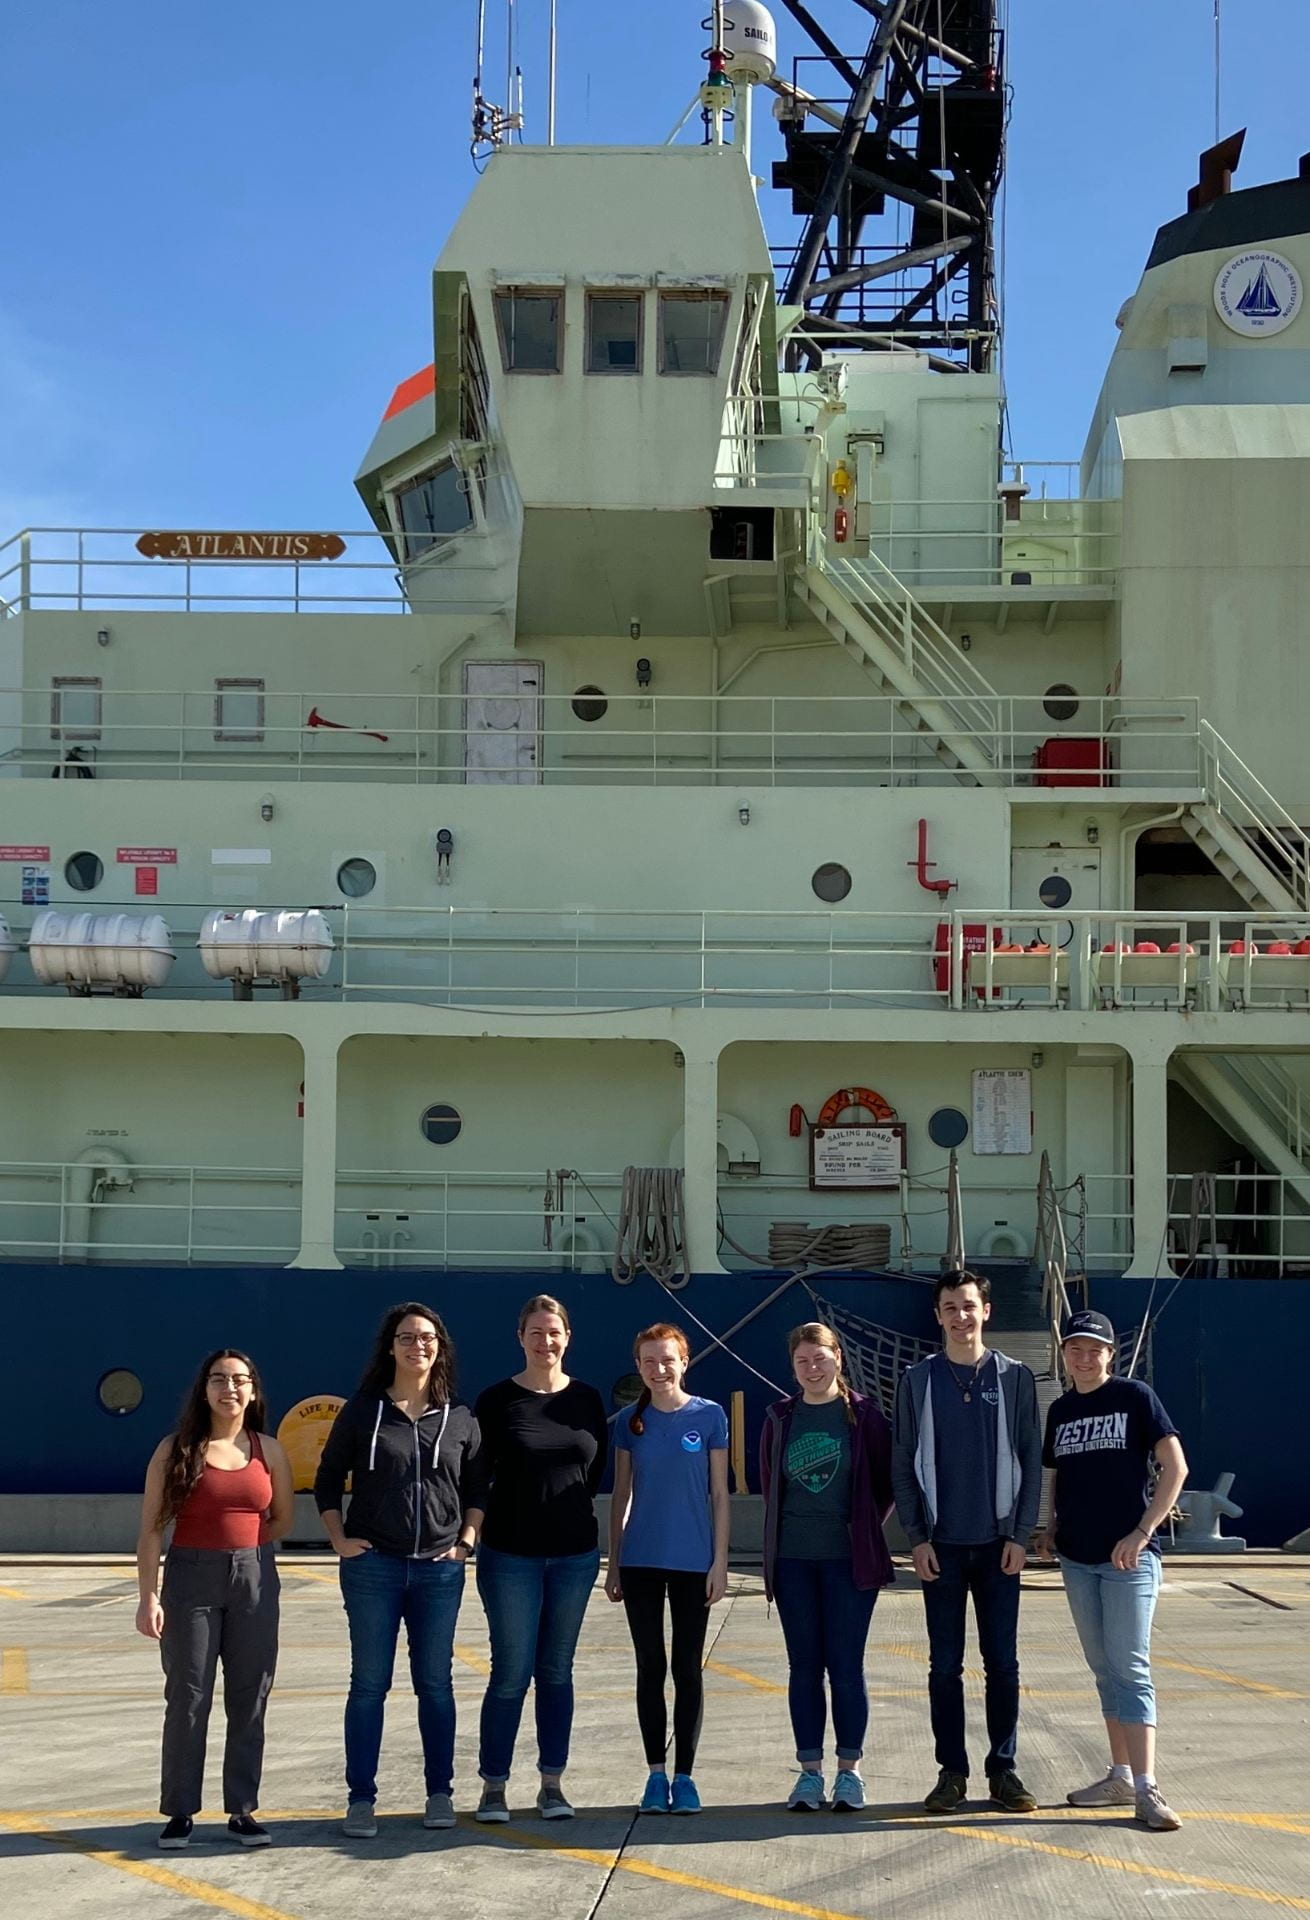 Arellano Lab standing in front of the R/V Atlantis